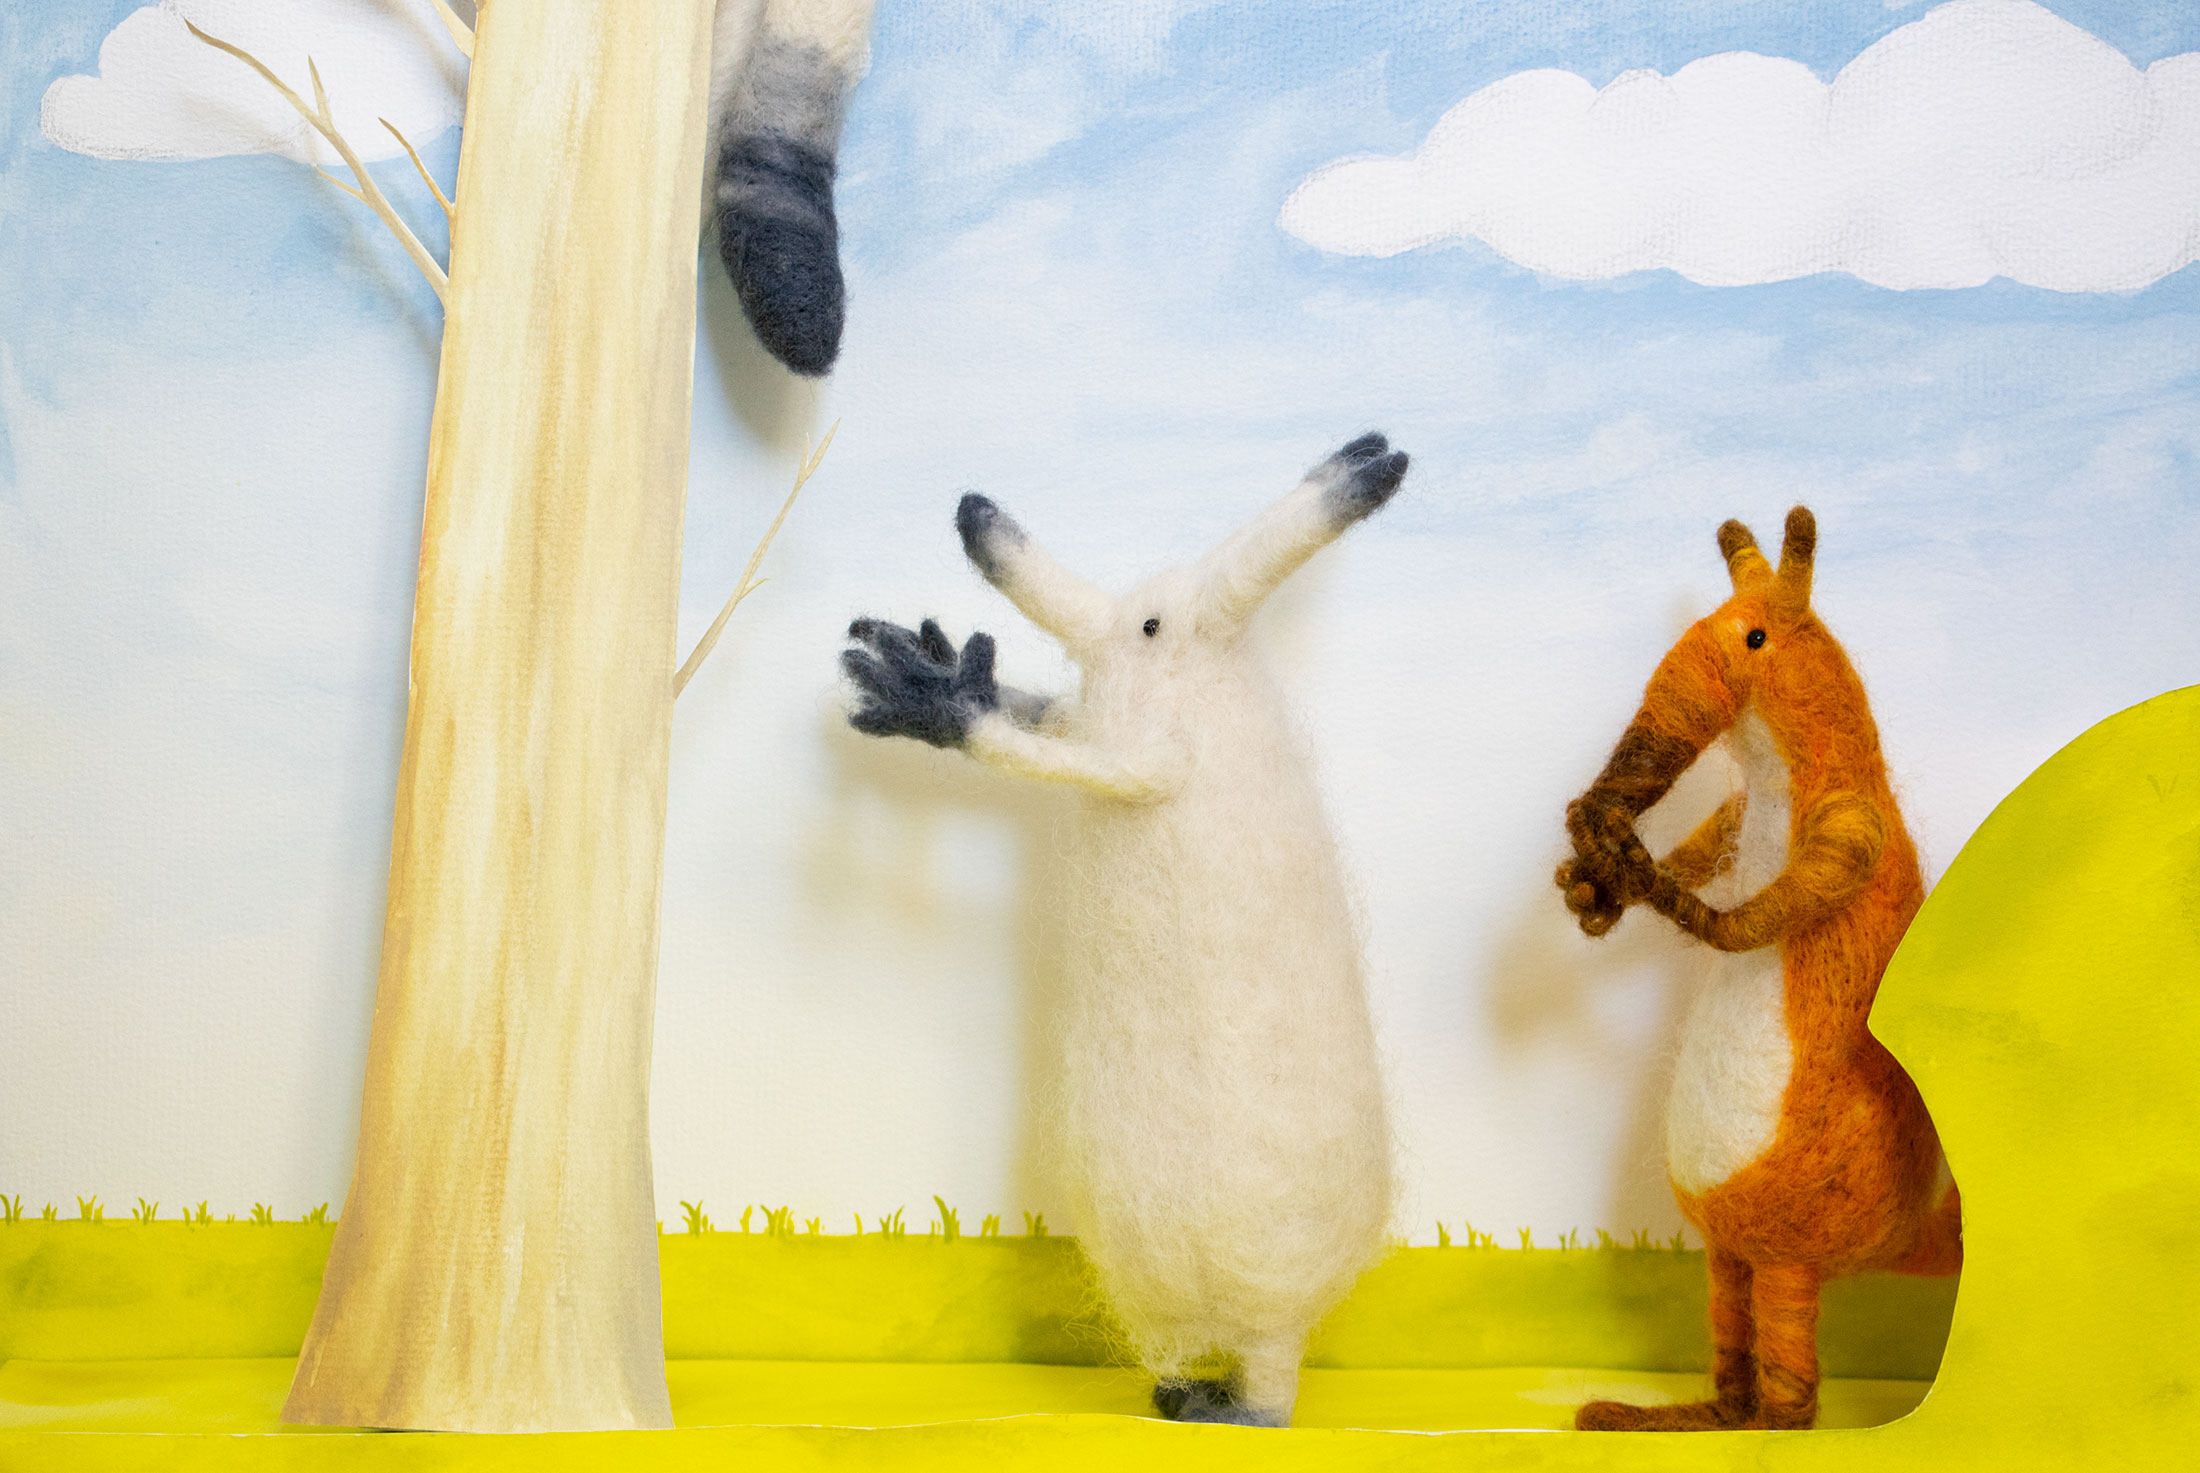 A white and grey needle felted foxes, and a white, orange and brown felted fox, face the left of the screen, looking at a tree upon whose branch the white fox's tail is hanging down.